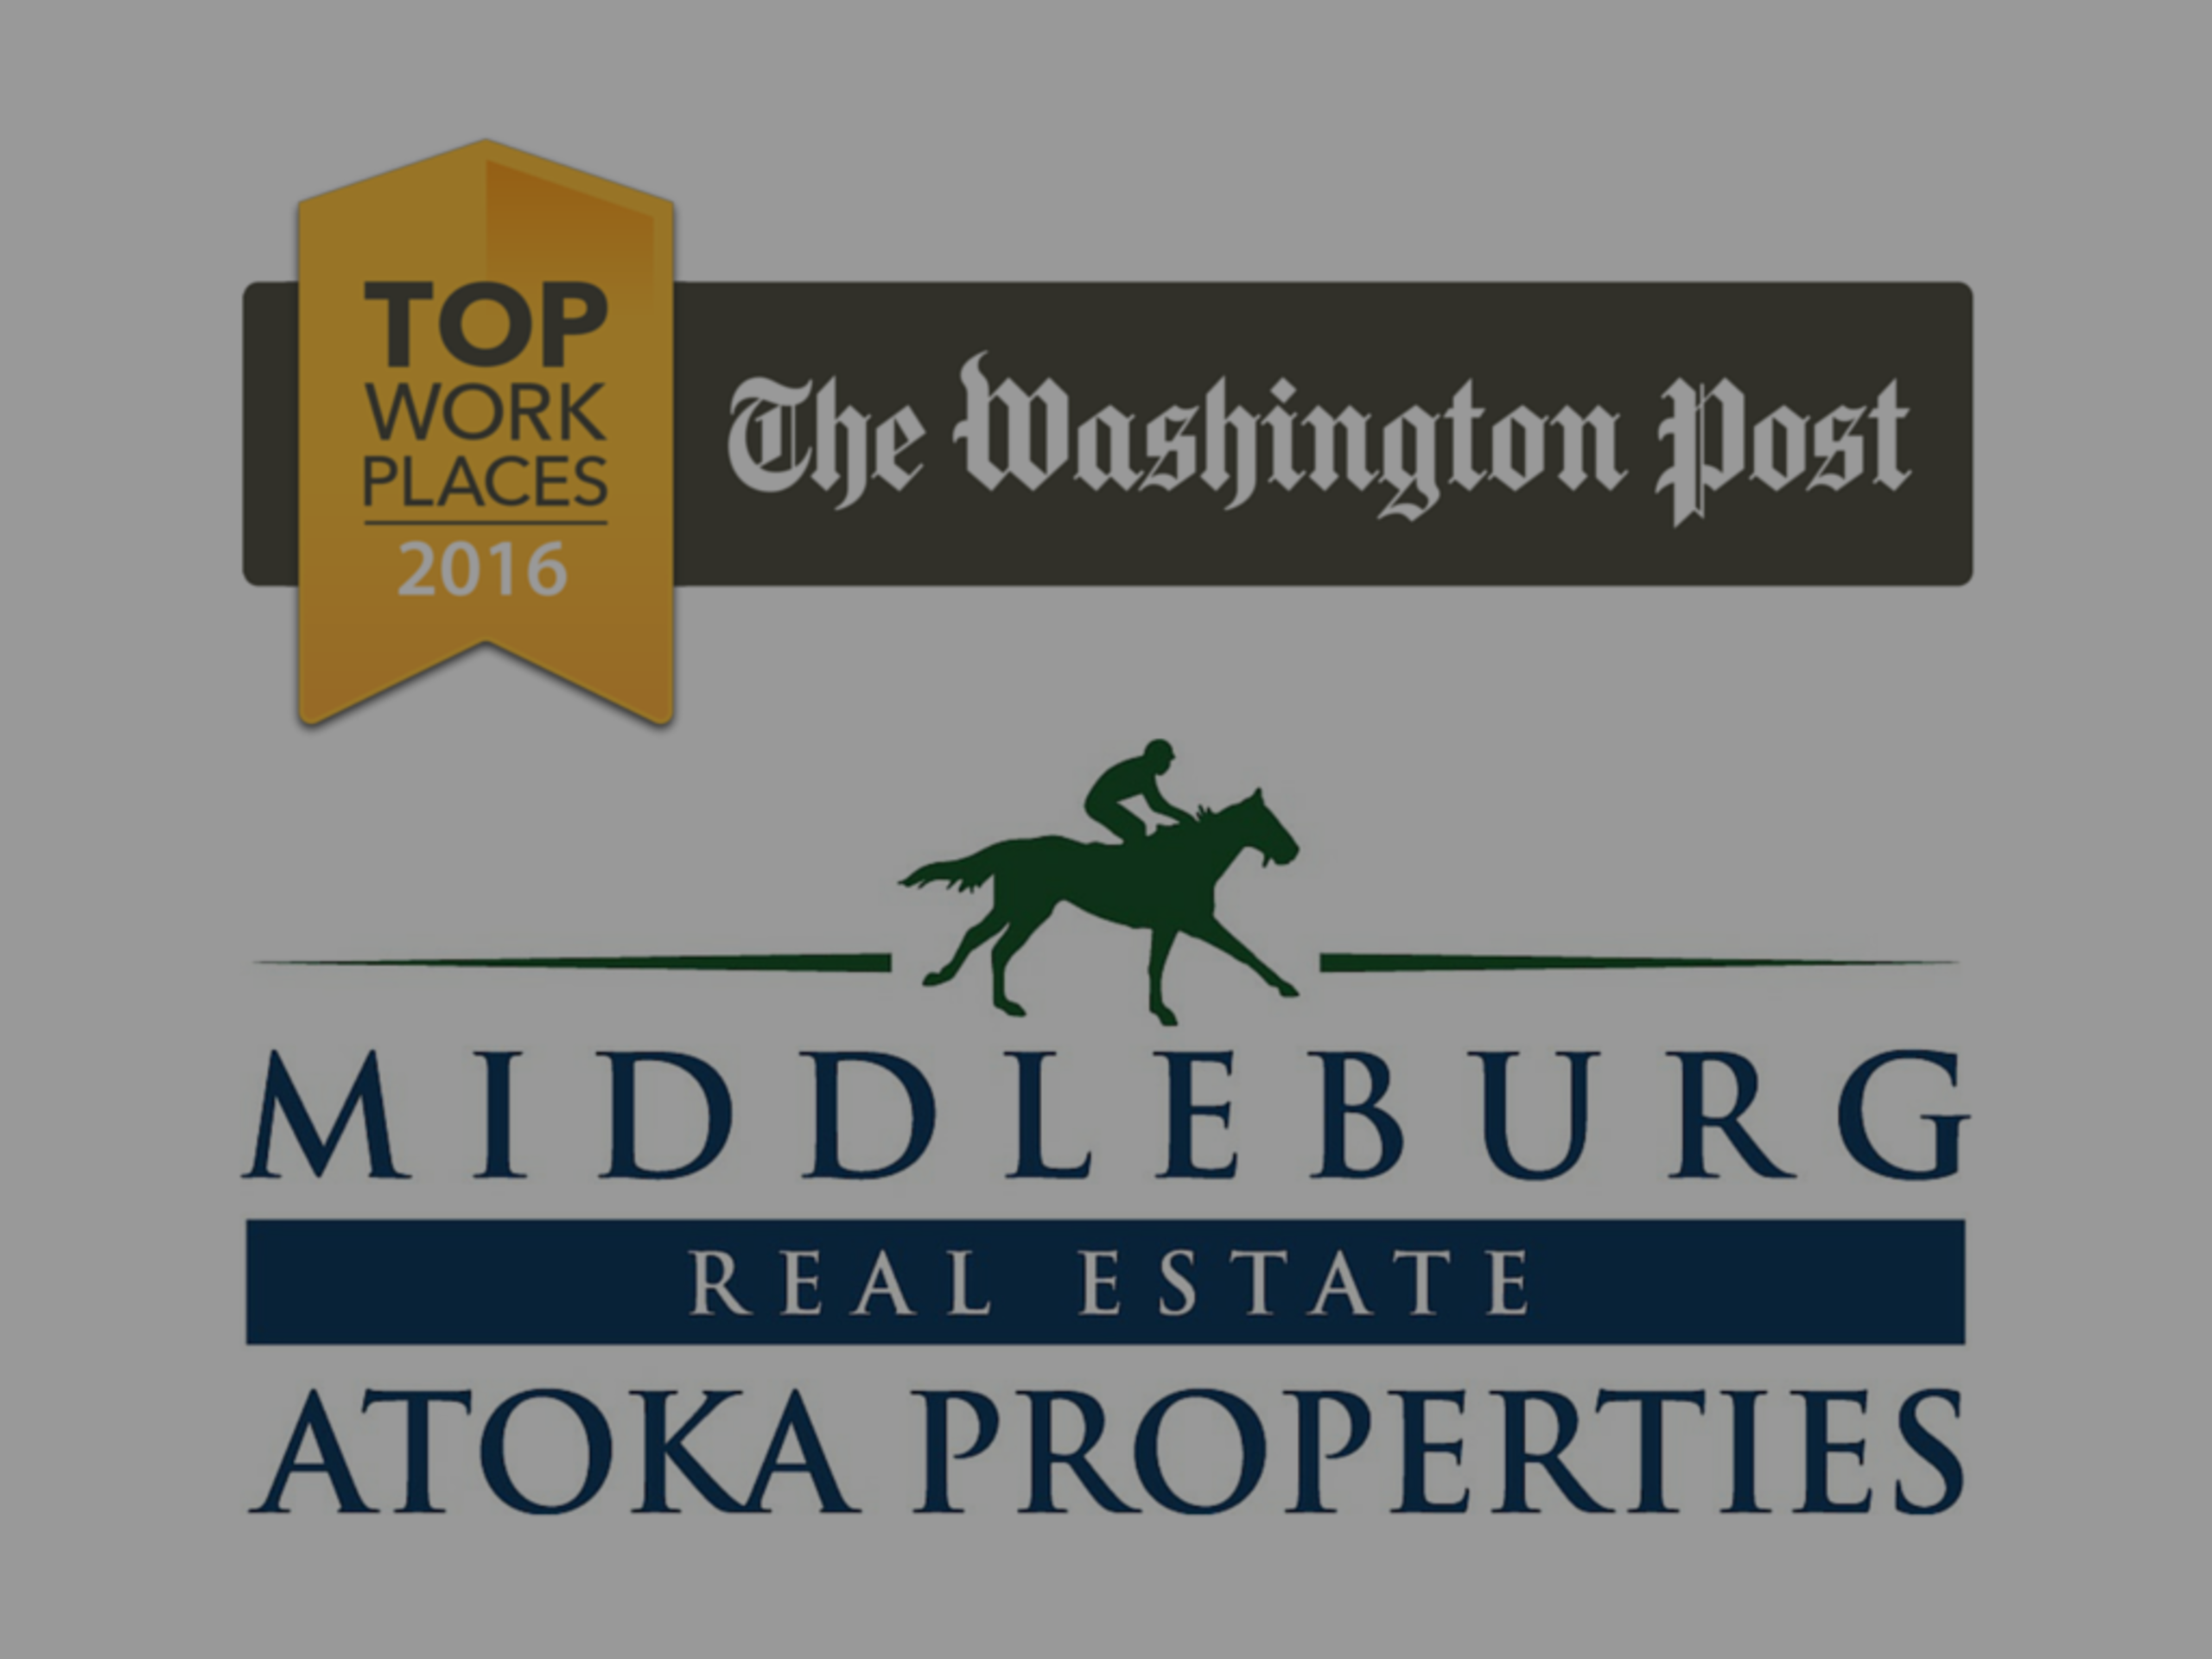 Middleburg Real Estate | Atoka Properties Named 2016 'Top Place to Work' By The Washington Post